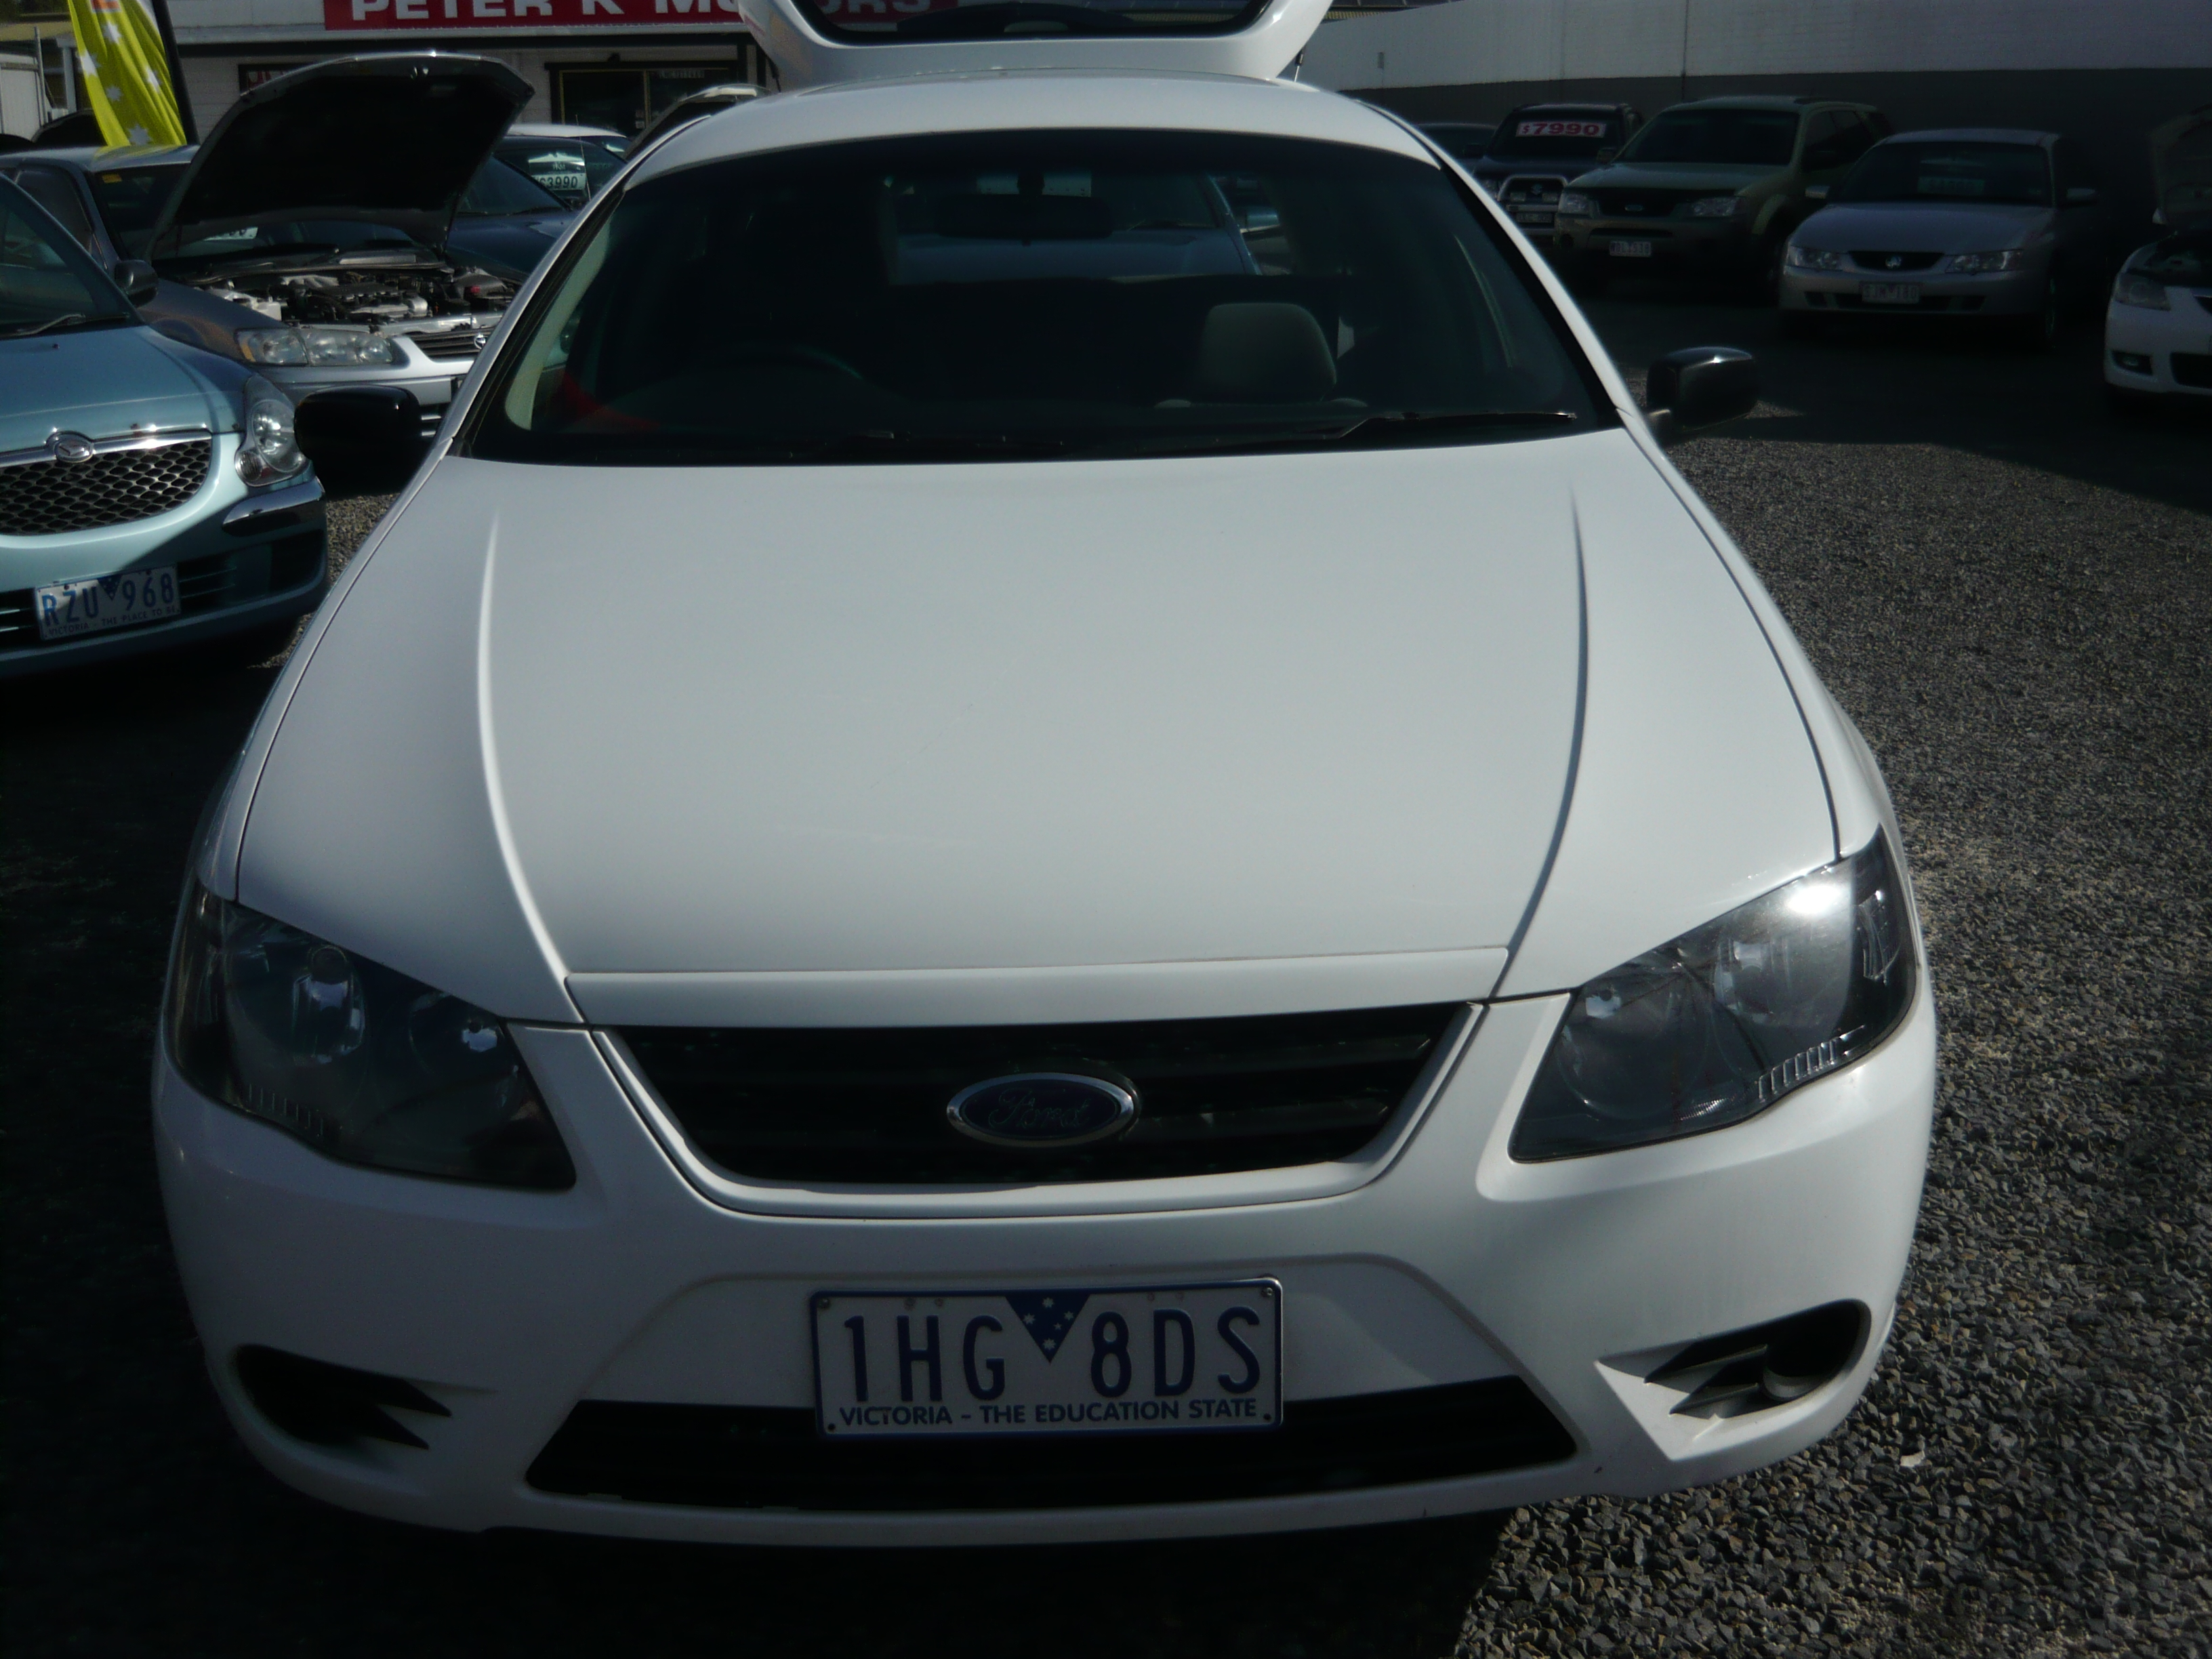 Used Car Wagon Ford Falcon 2008 - Got That